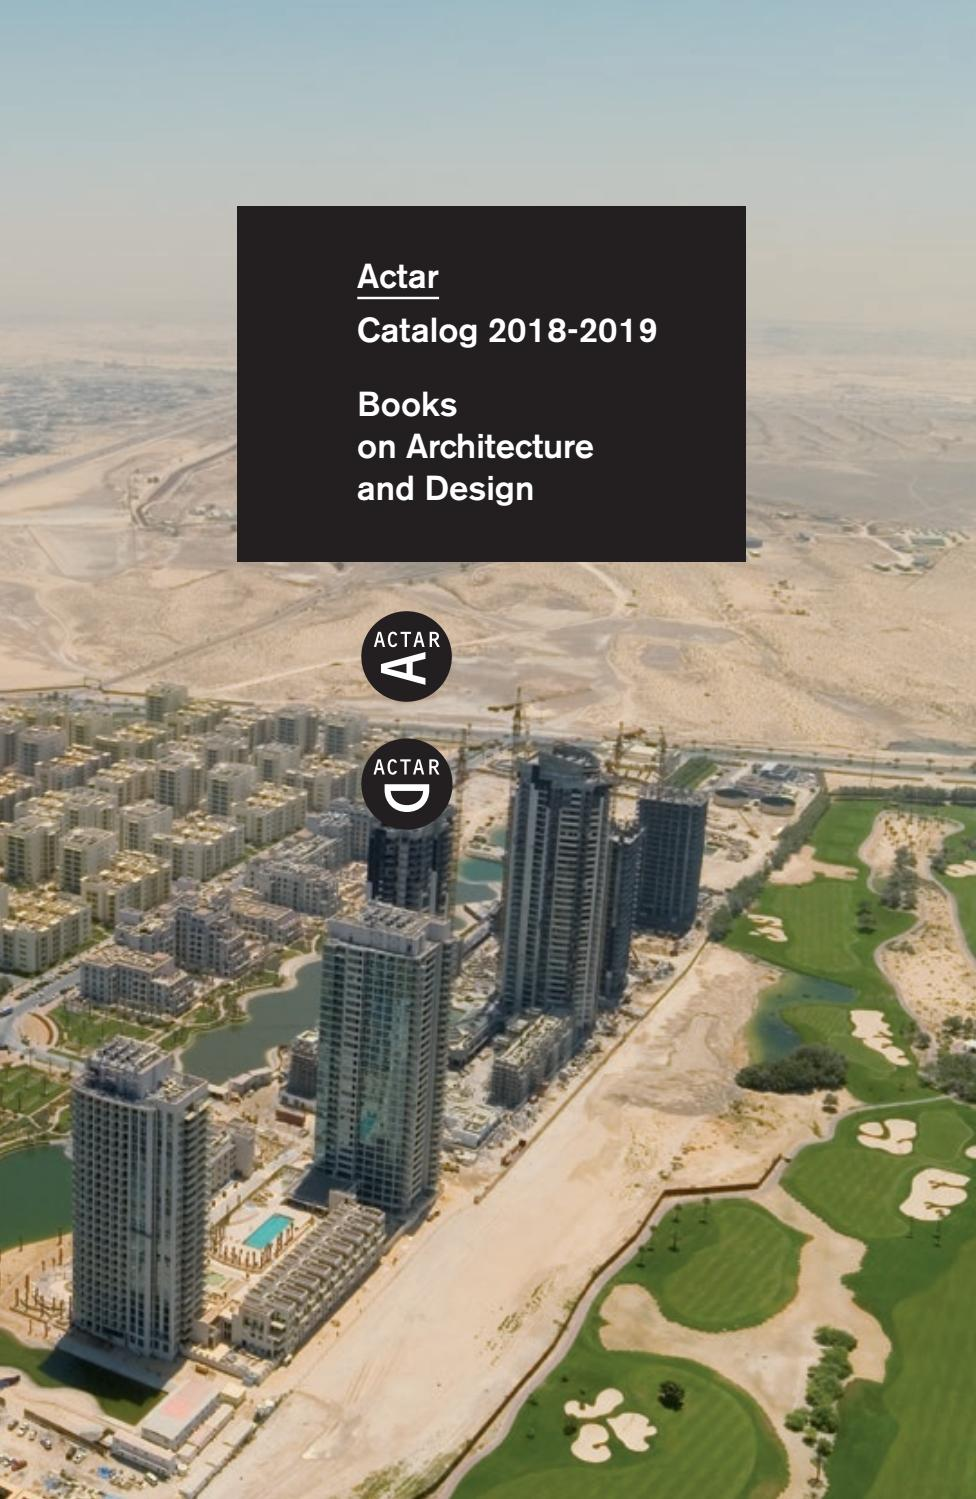 Catalog 2018-2019  Books on Architecture and Design  by